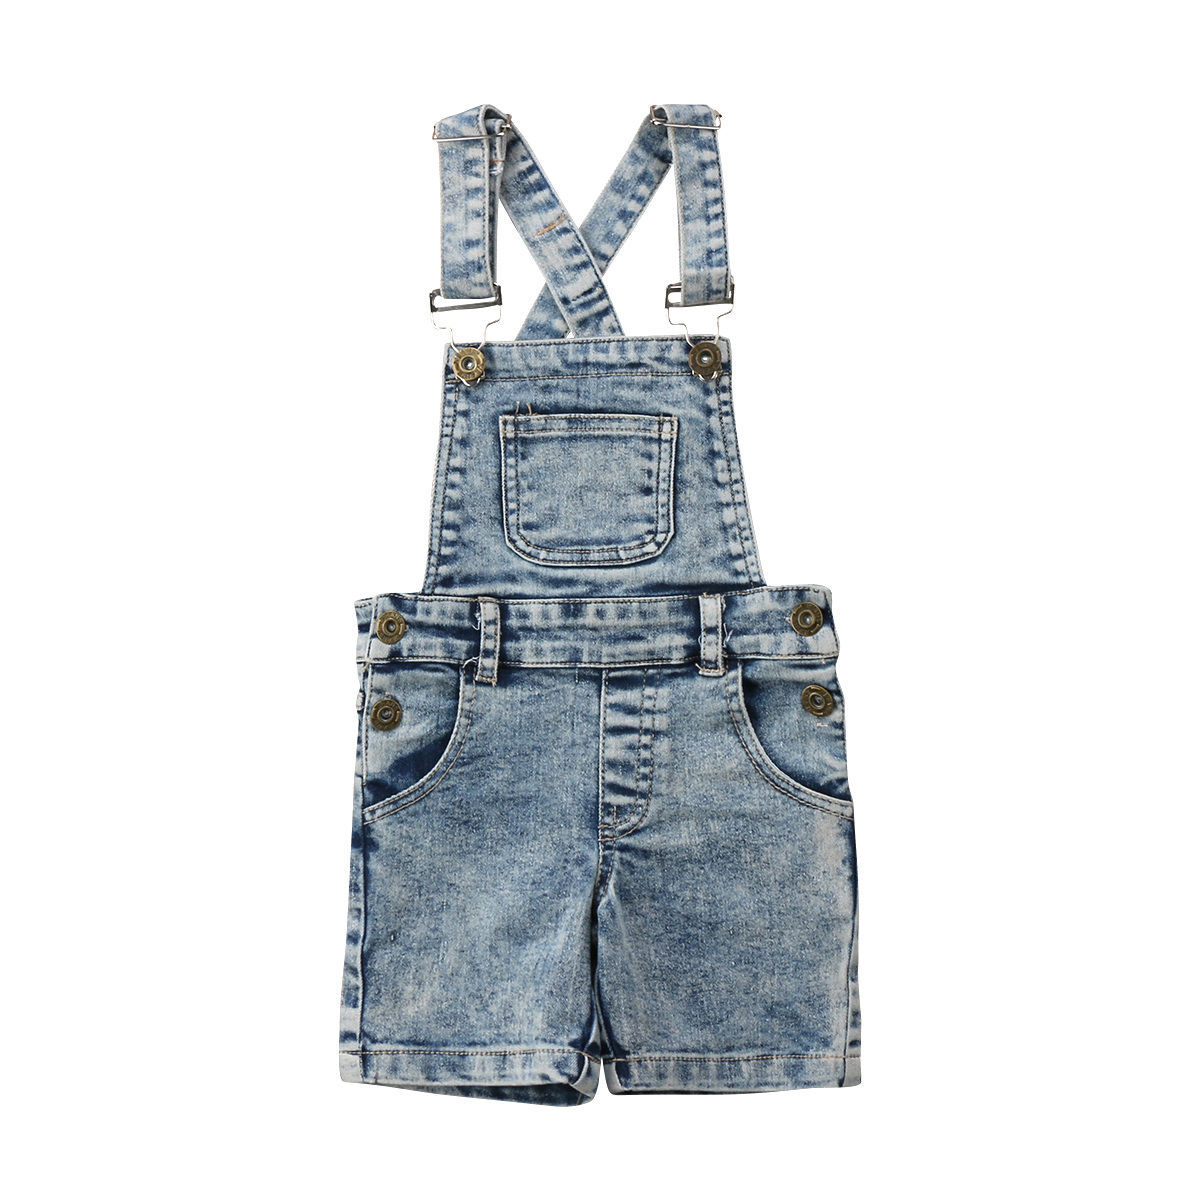 Fashion Kids Baby Girl Boy Deinm Bib Pants Overalls Romper Outfits Summer Clothes 6M-6T